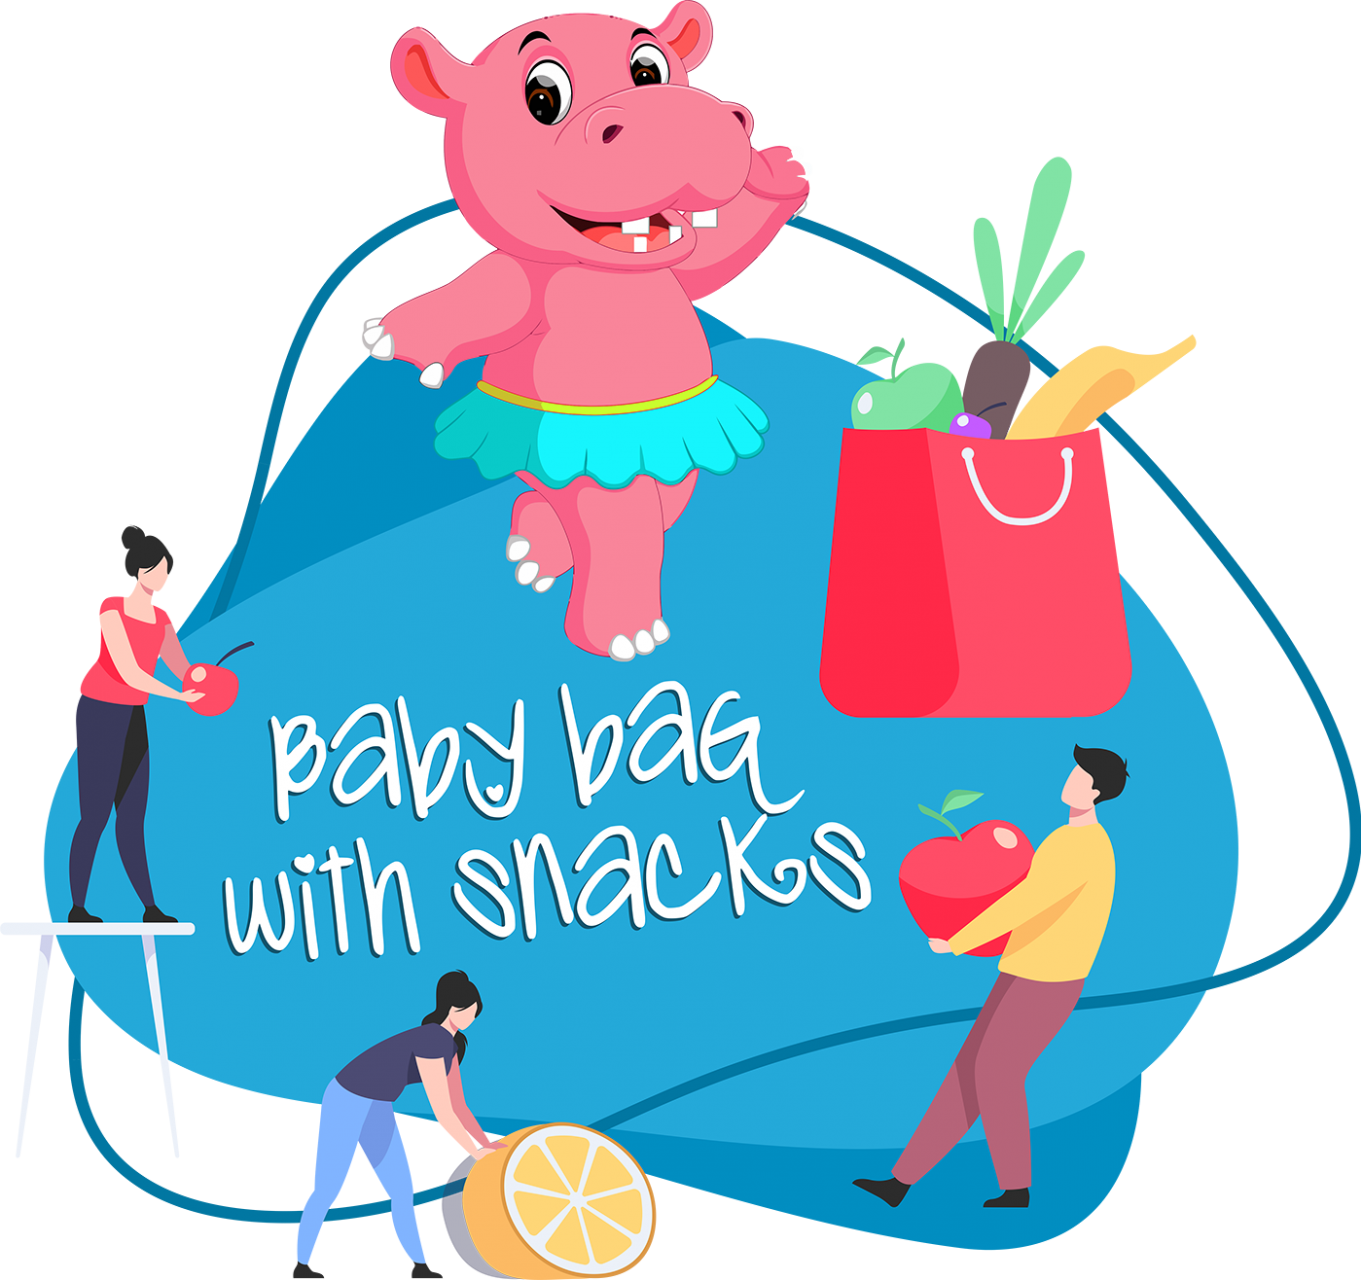 Baby bag with snacks